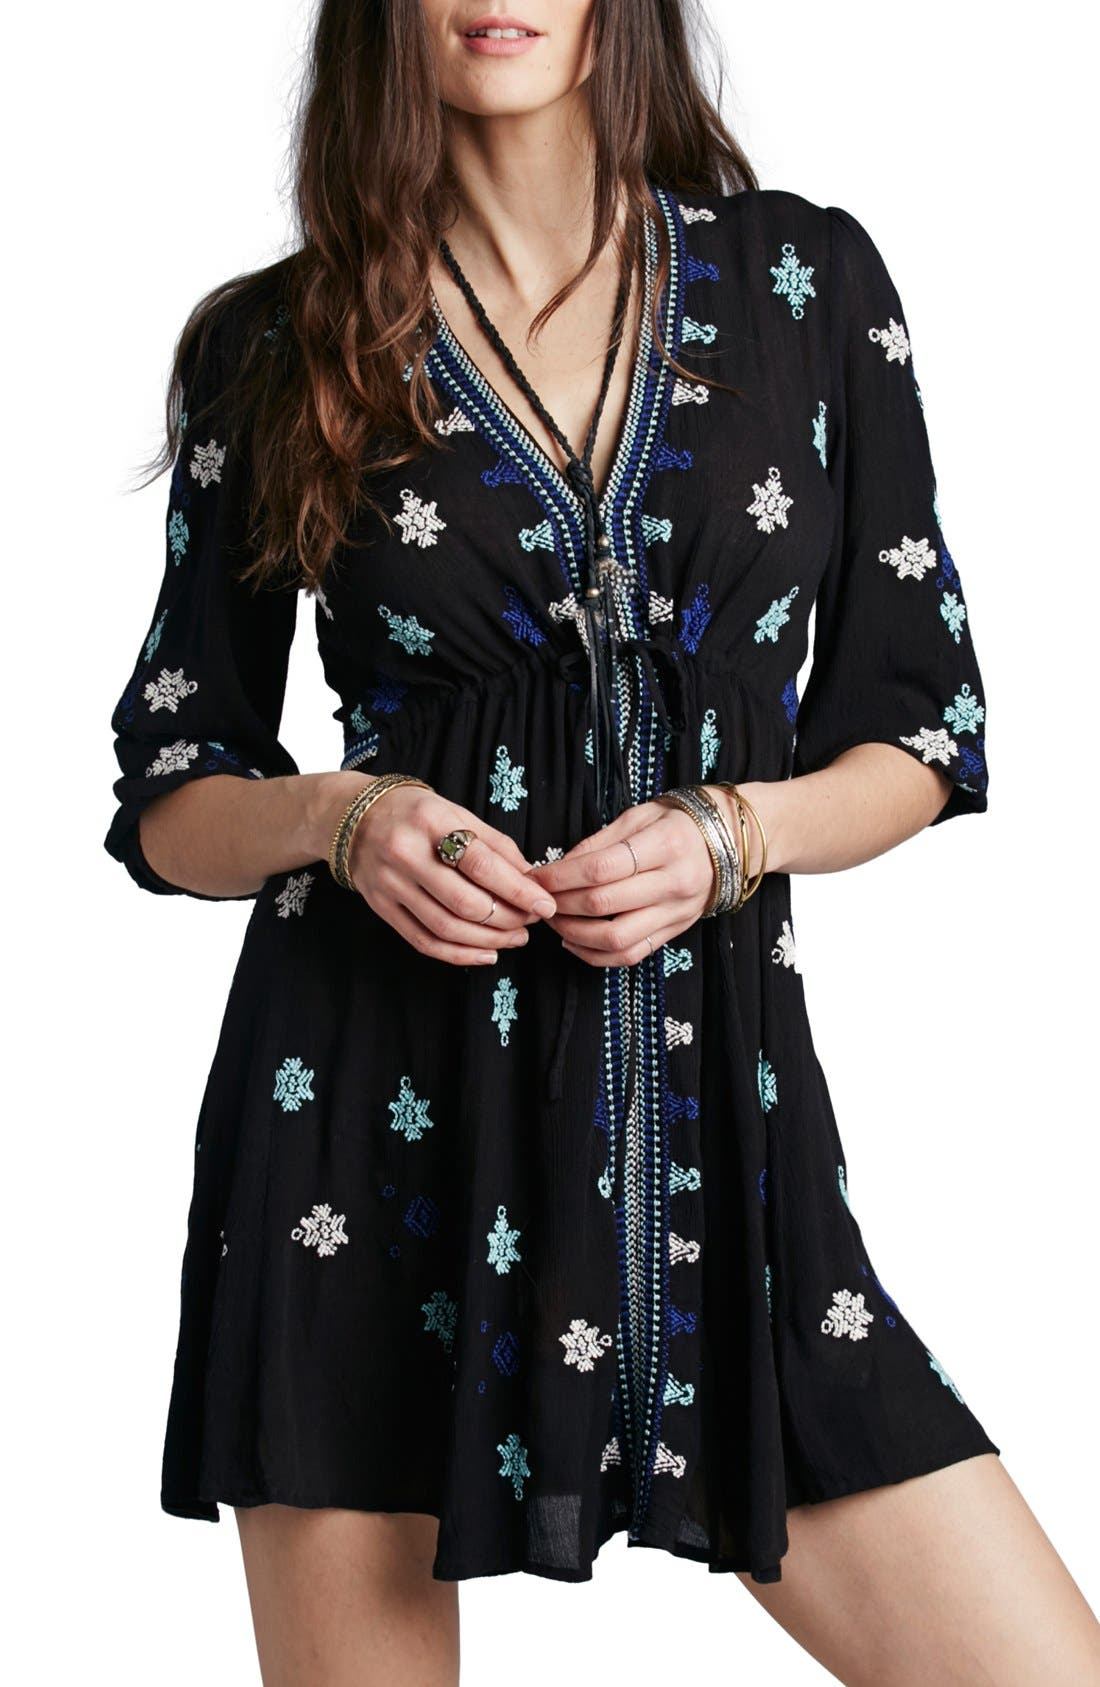 'Star Gazer' Embroidered Tunic Dress,                         Main,                         color, 001